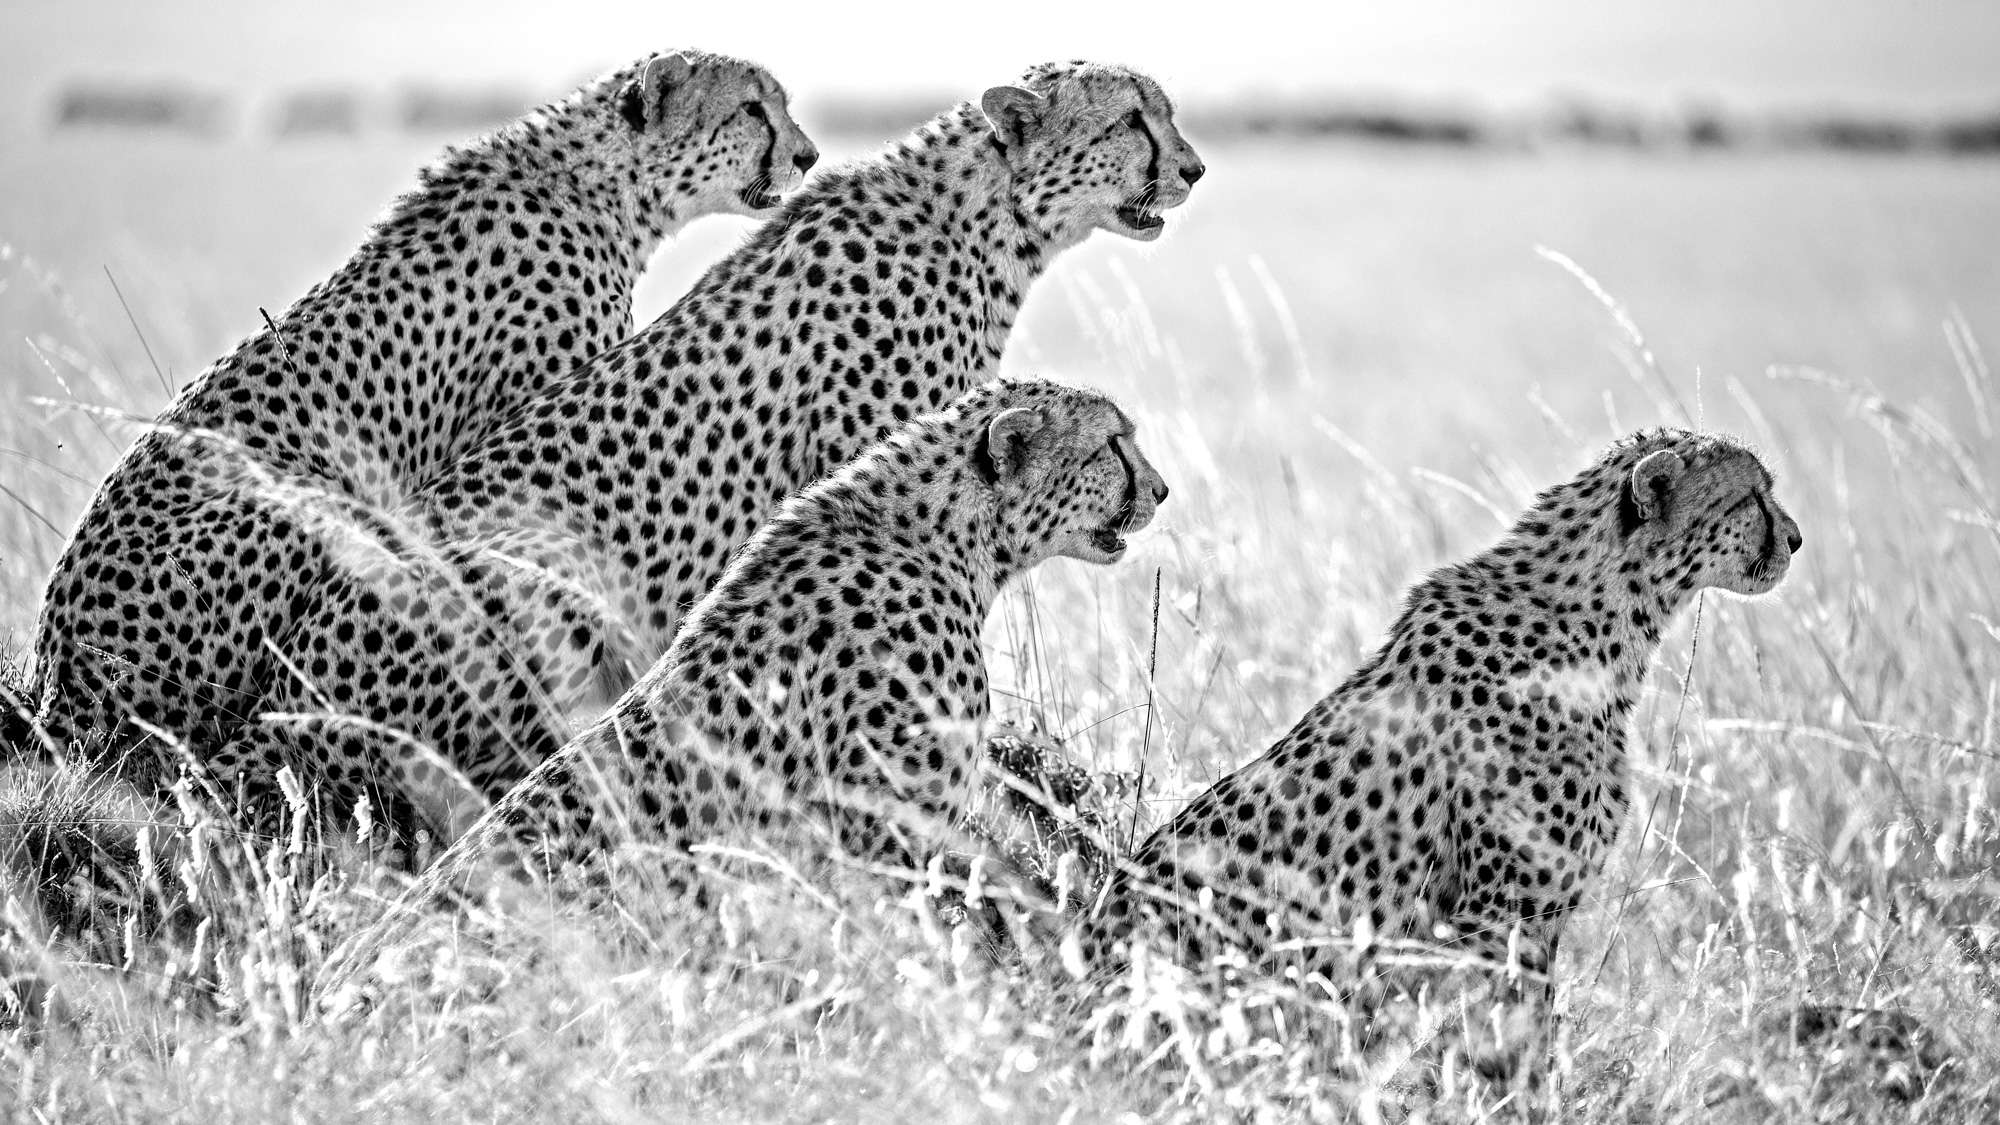 Mark Fitzsimmons - Cheetah Brothers Masai Mara